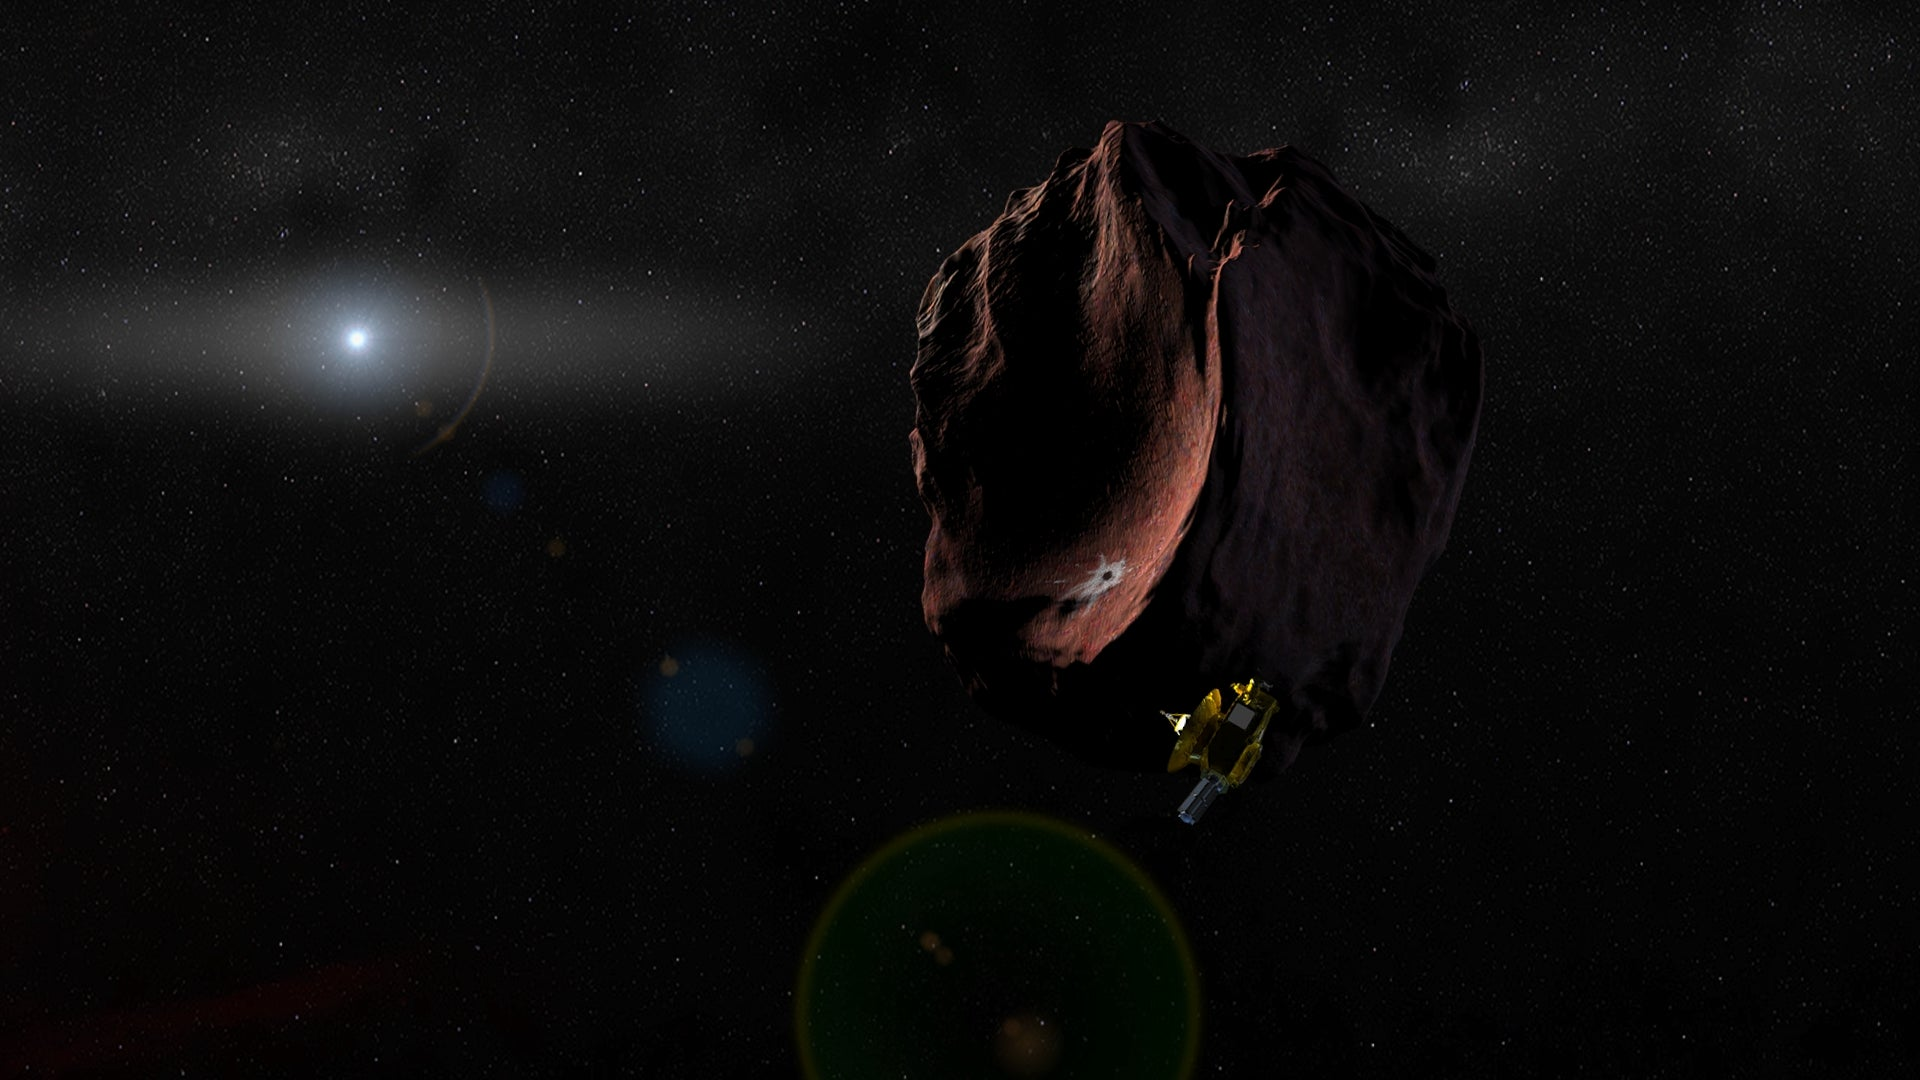 NASA Captures Impossible Glimpse Of Kuiper Belt Object Billions Of Kilometres Away